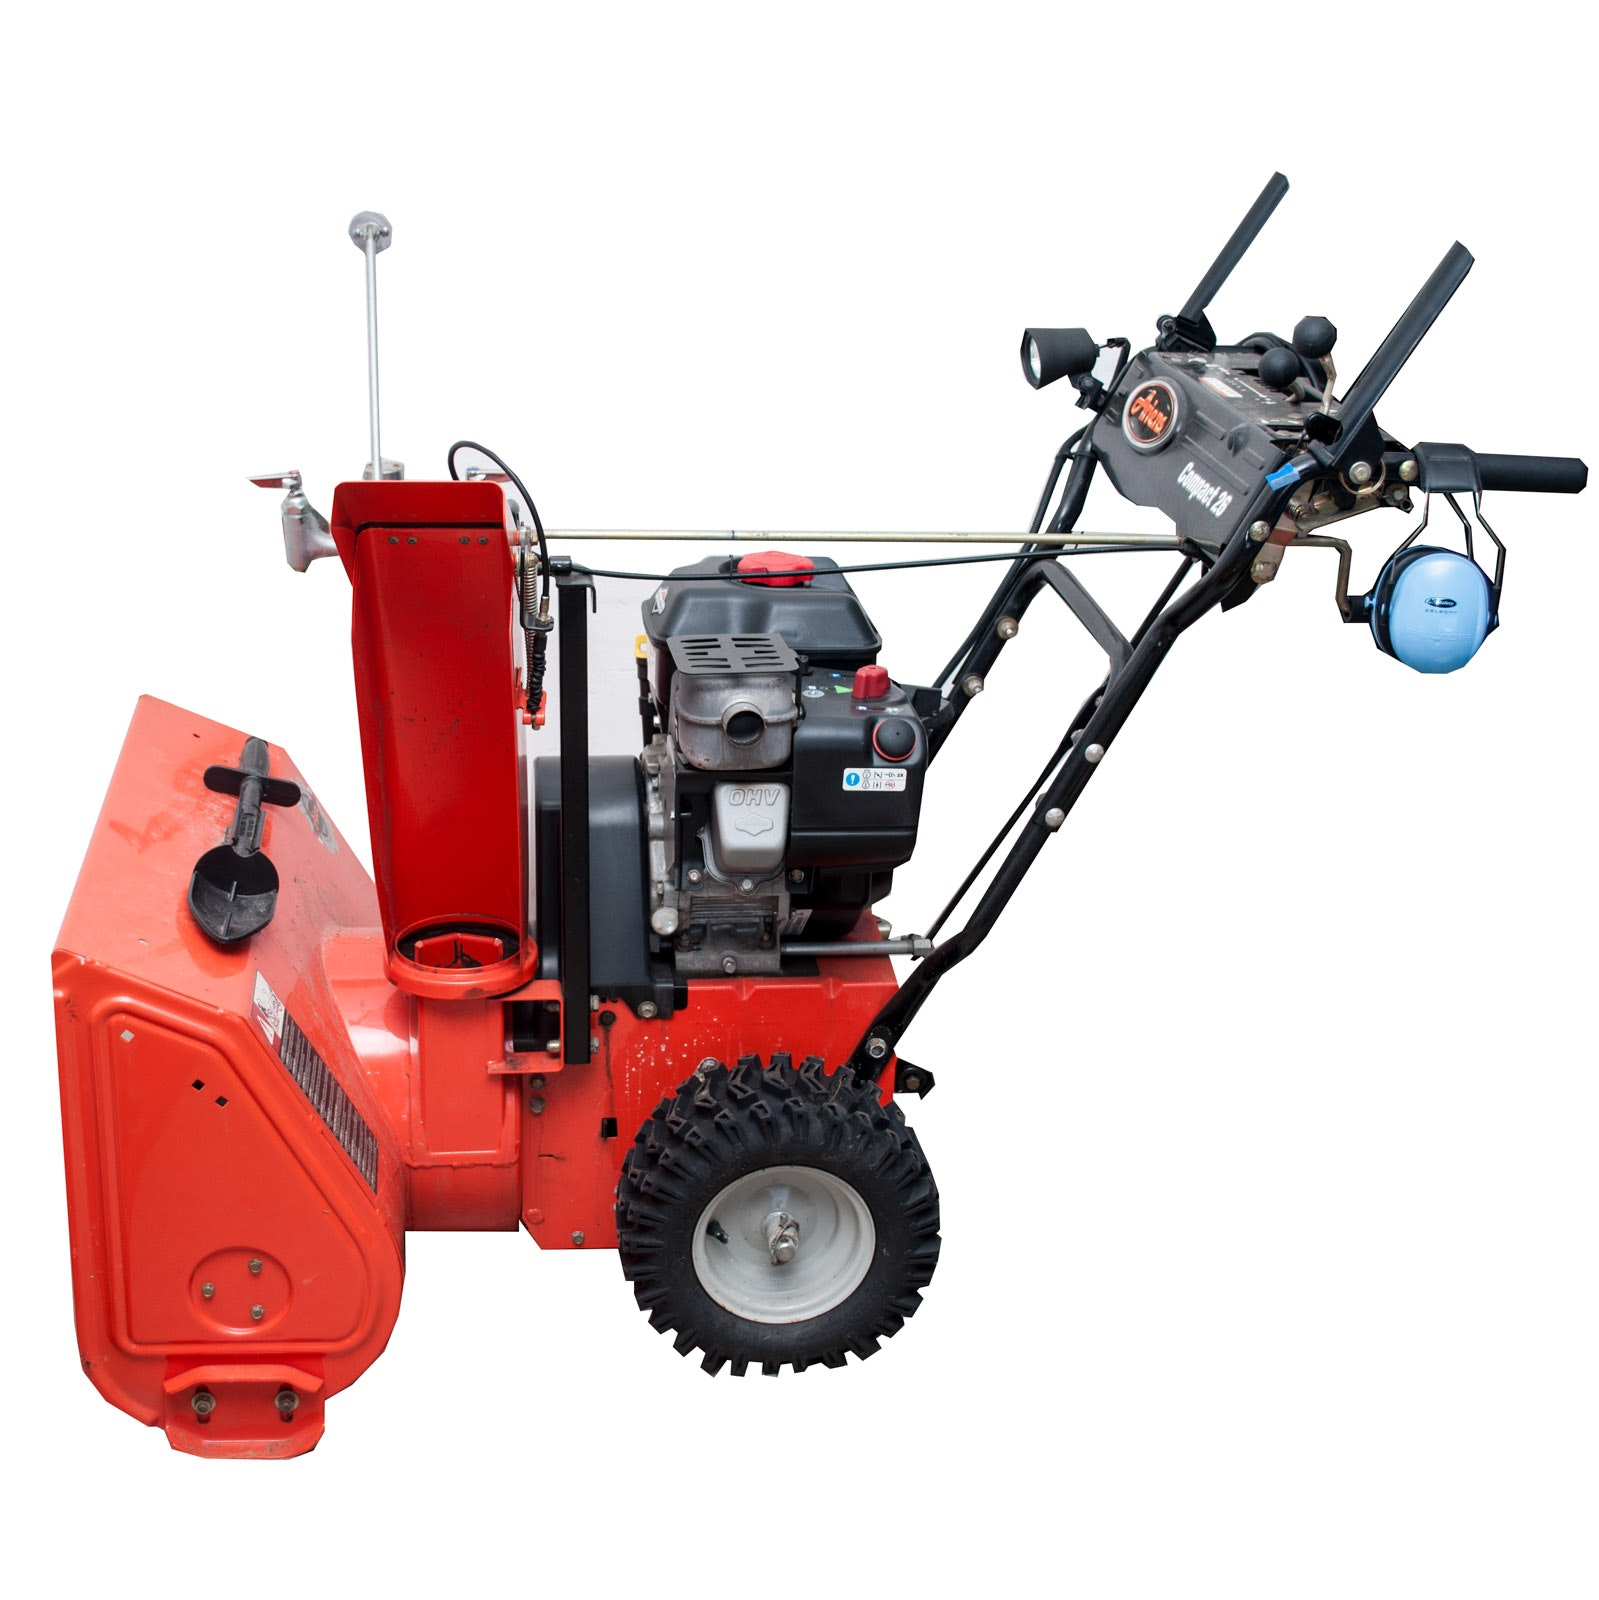 Ariens 920 Series Compact 26 LE Snow Blower